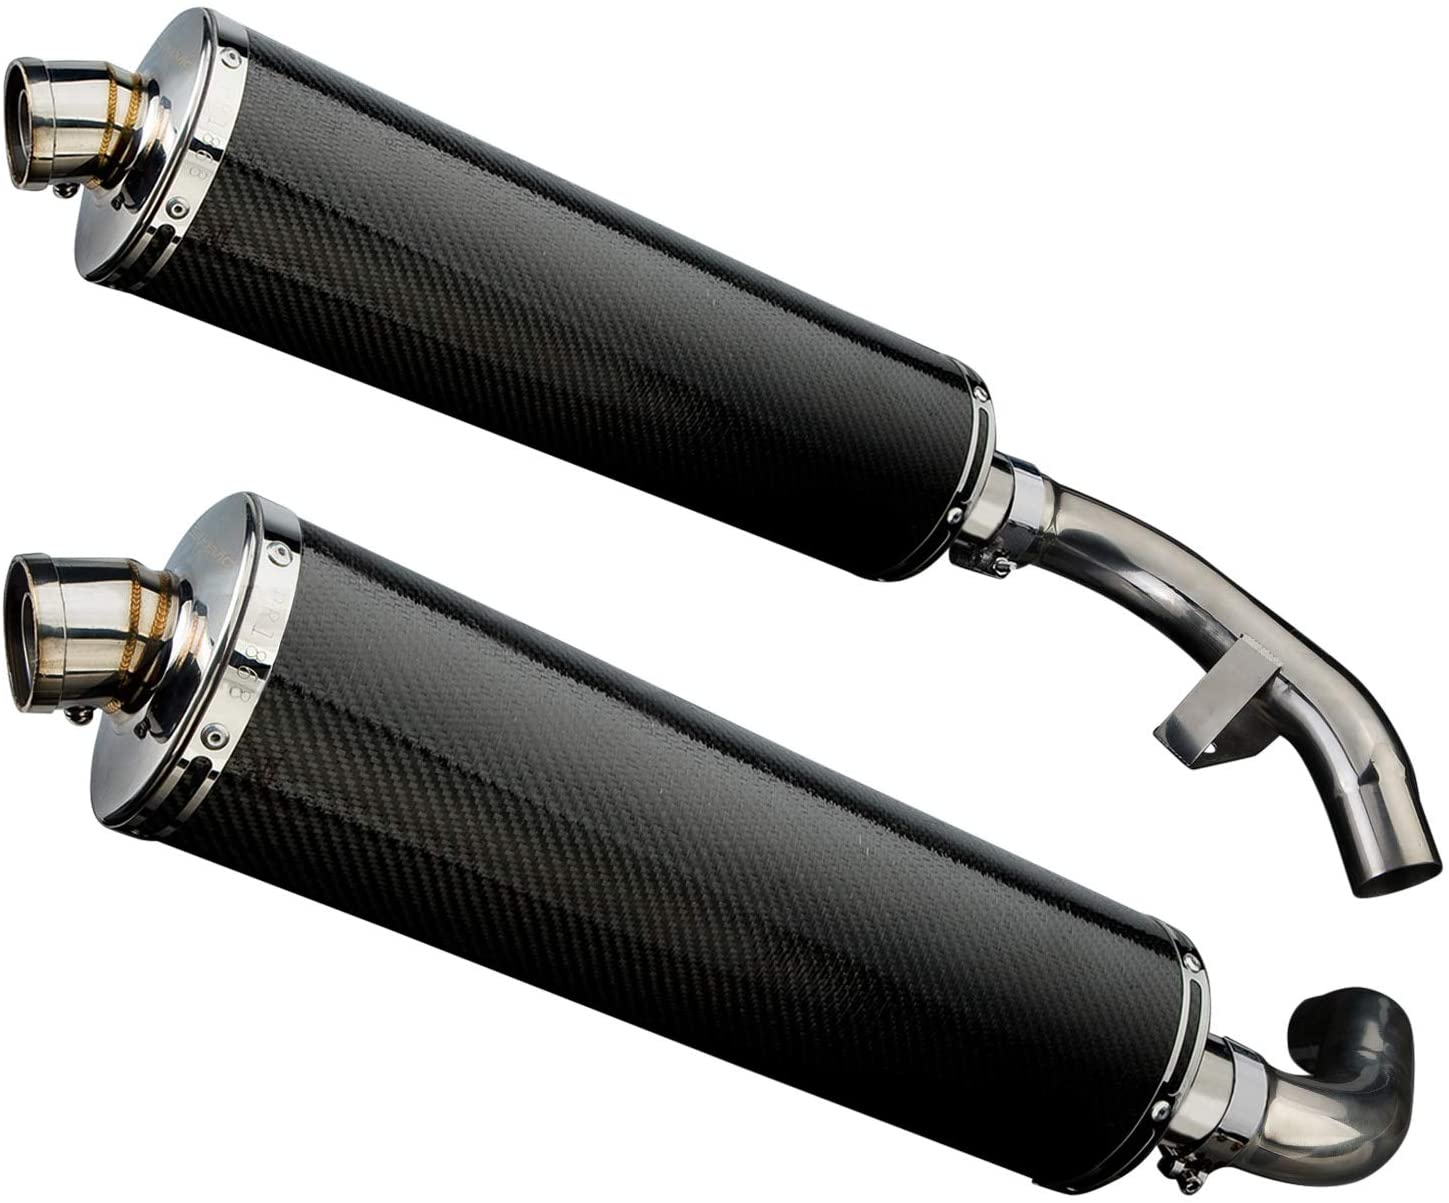 Delkevic Aftermarket Slip On compatible with Honda ST1100 (1991-2002) with 18